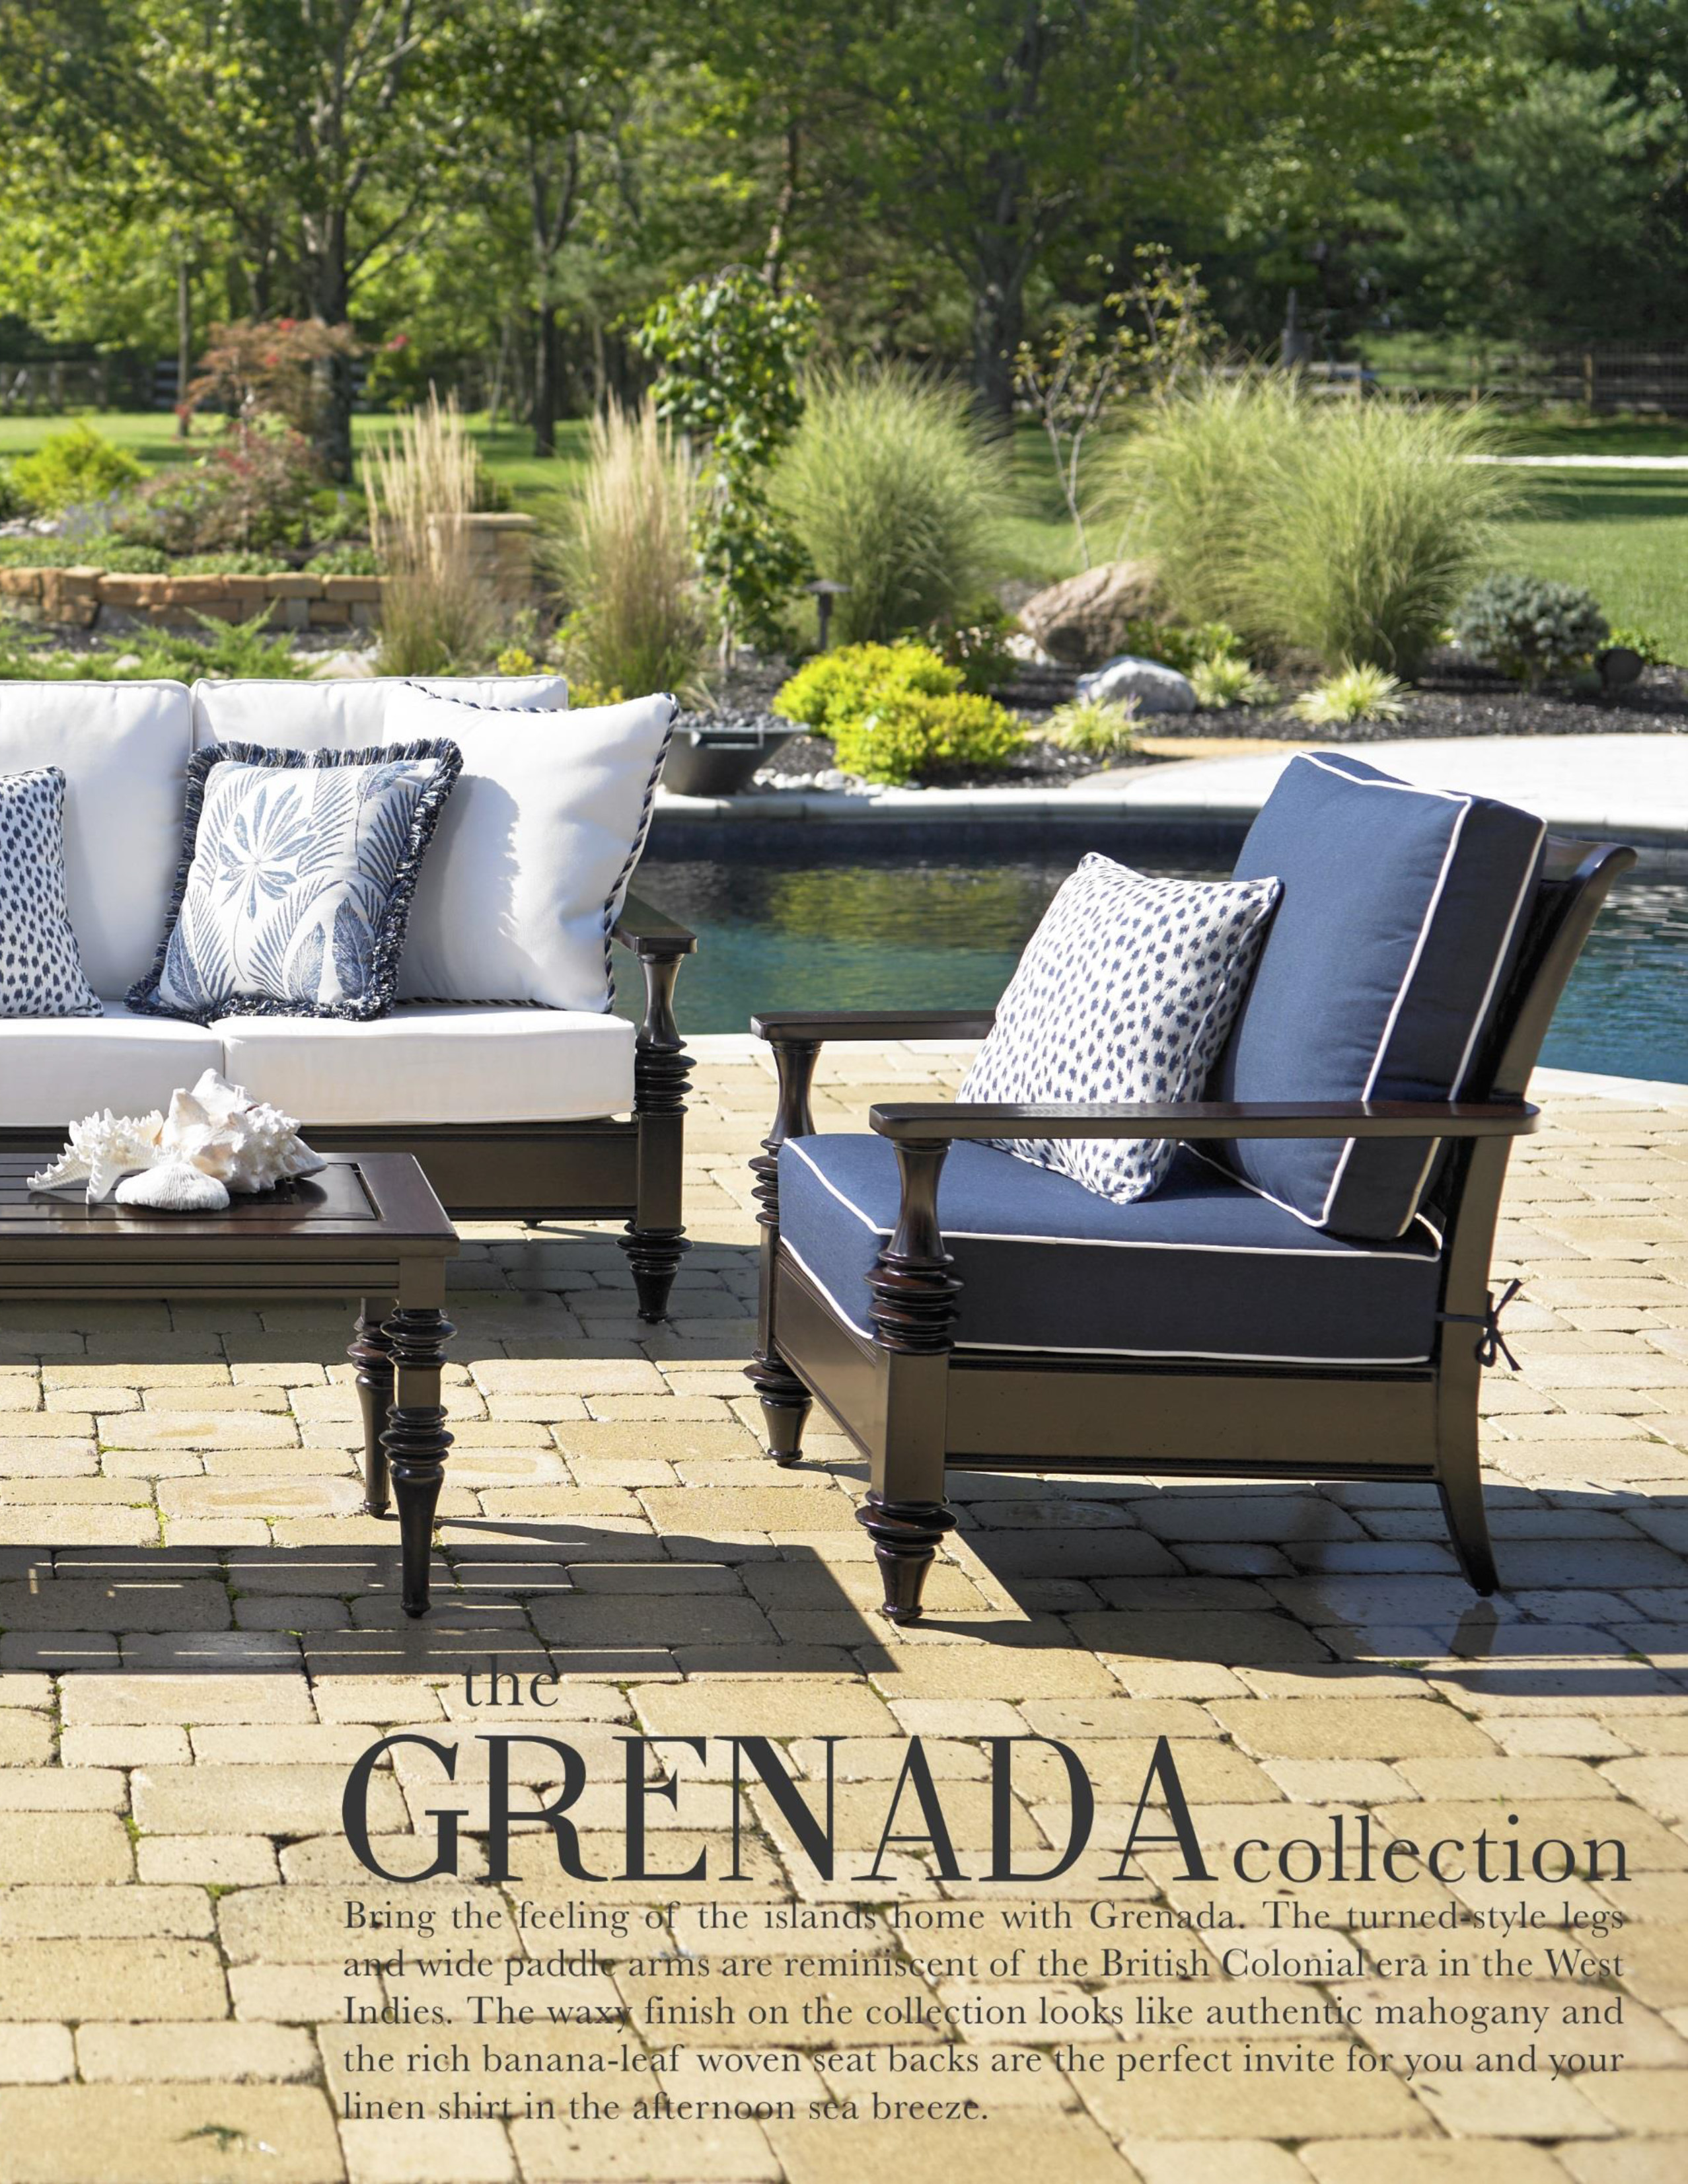 Superieur Your Backyard And Pool Patio Has Never Looked So Good With Plank U0026 Hide  Companyu0027s Outdoor Furniture! Shop Your Favorite Look Today From Their  Catalog And ...